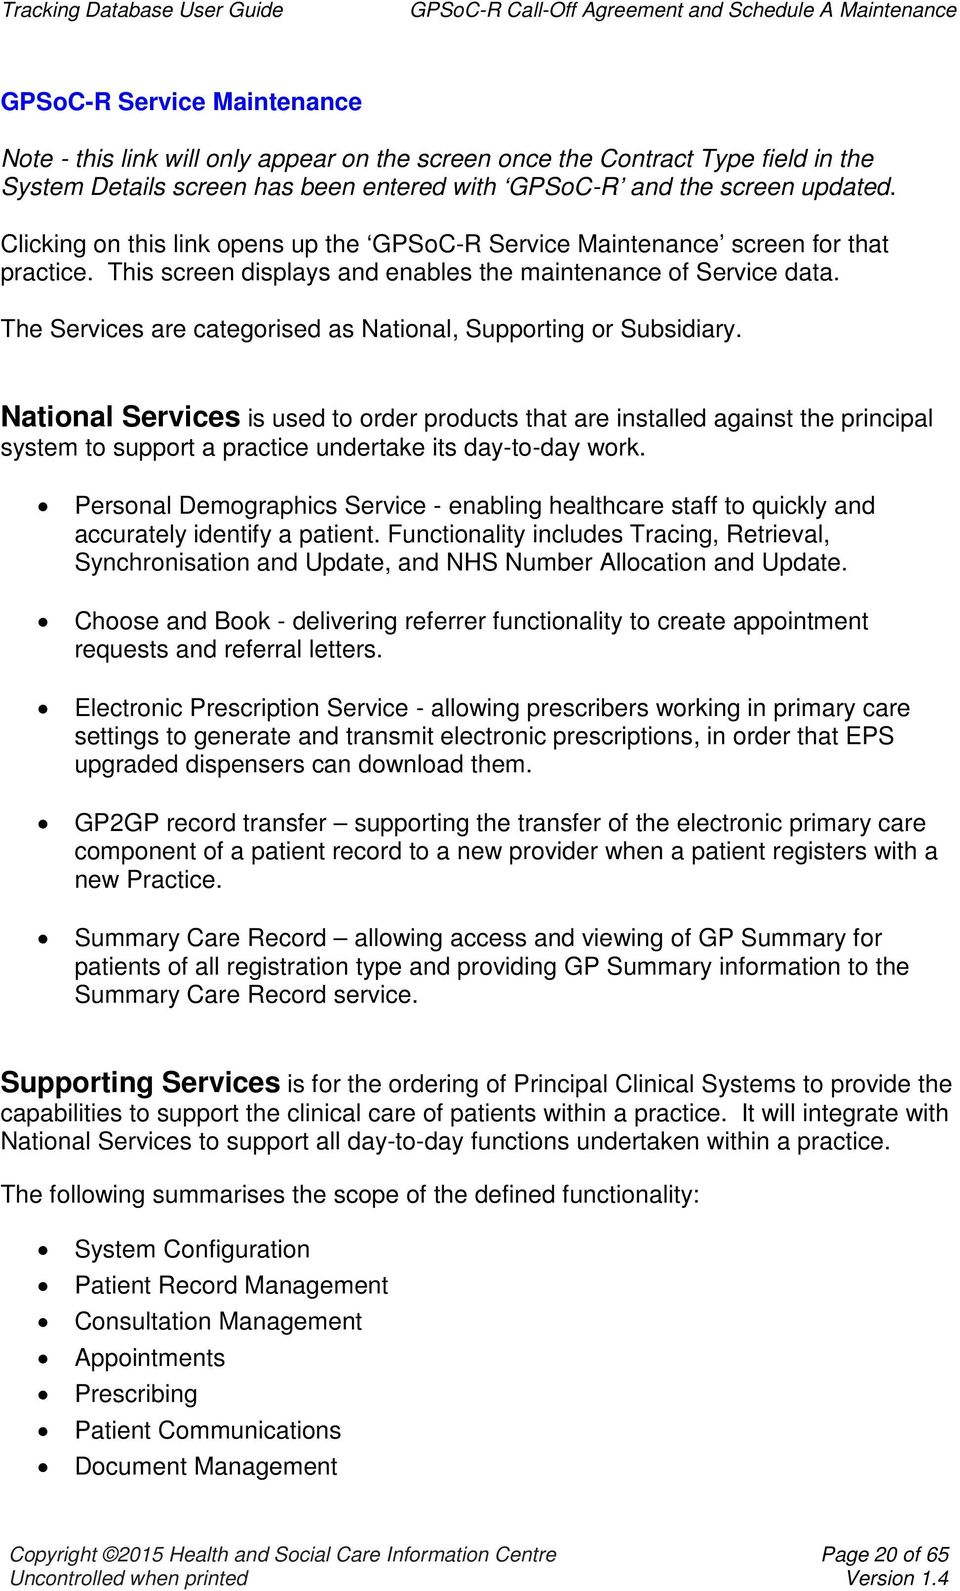 The Services are categorised as National, Supporting or Subsidiary.